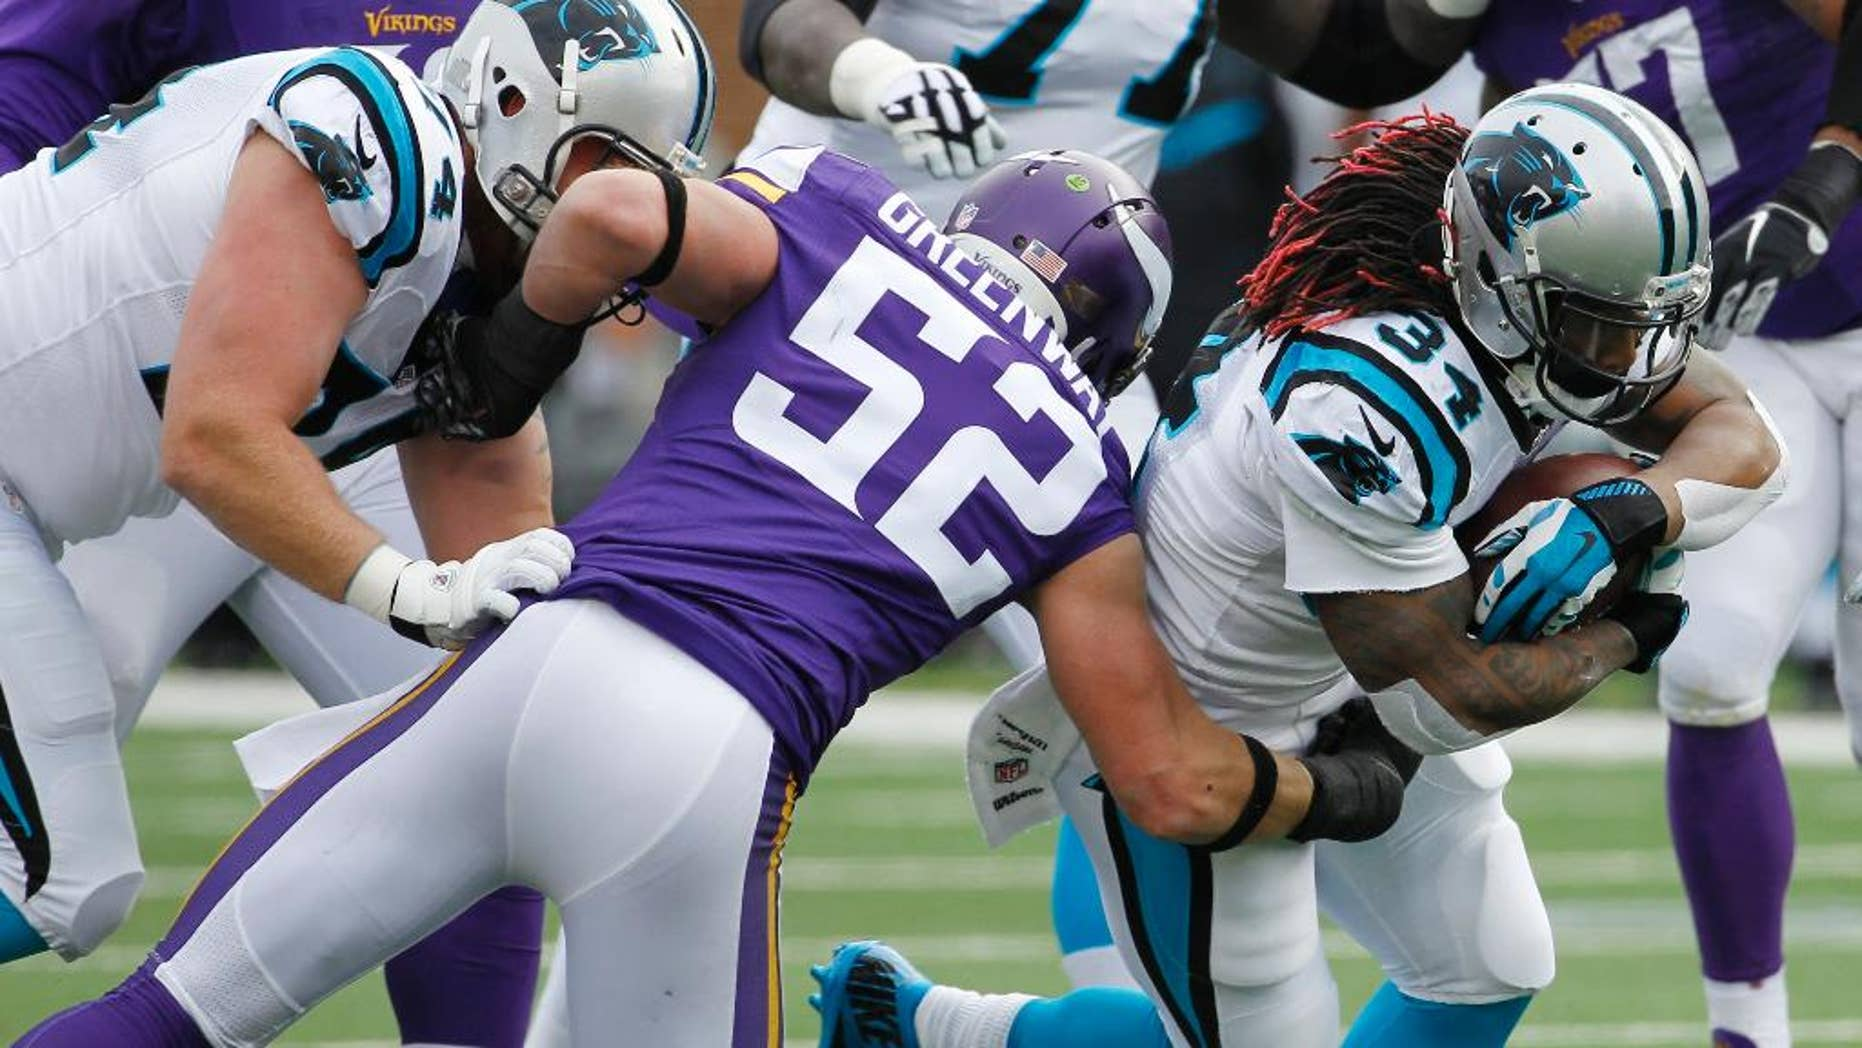 Carolina Panthers running back DeAngelo Williams (34) tries to break a tackle by Minnesota Vikings outside linebacker Chad Greenway (52) during the first half of an NFL football game, Sunday, Nov. 30, 2014, in Minneapolis. (AP Photo/Ann Heisenfelt)